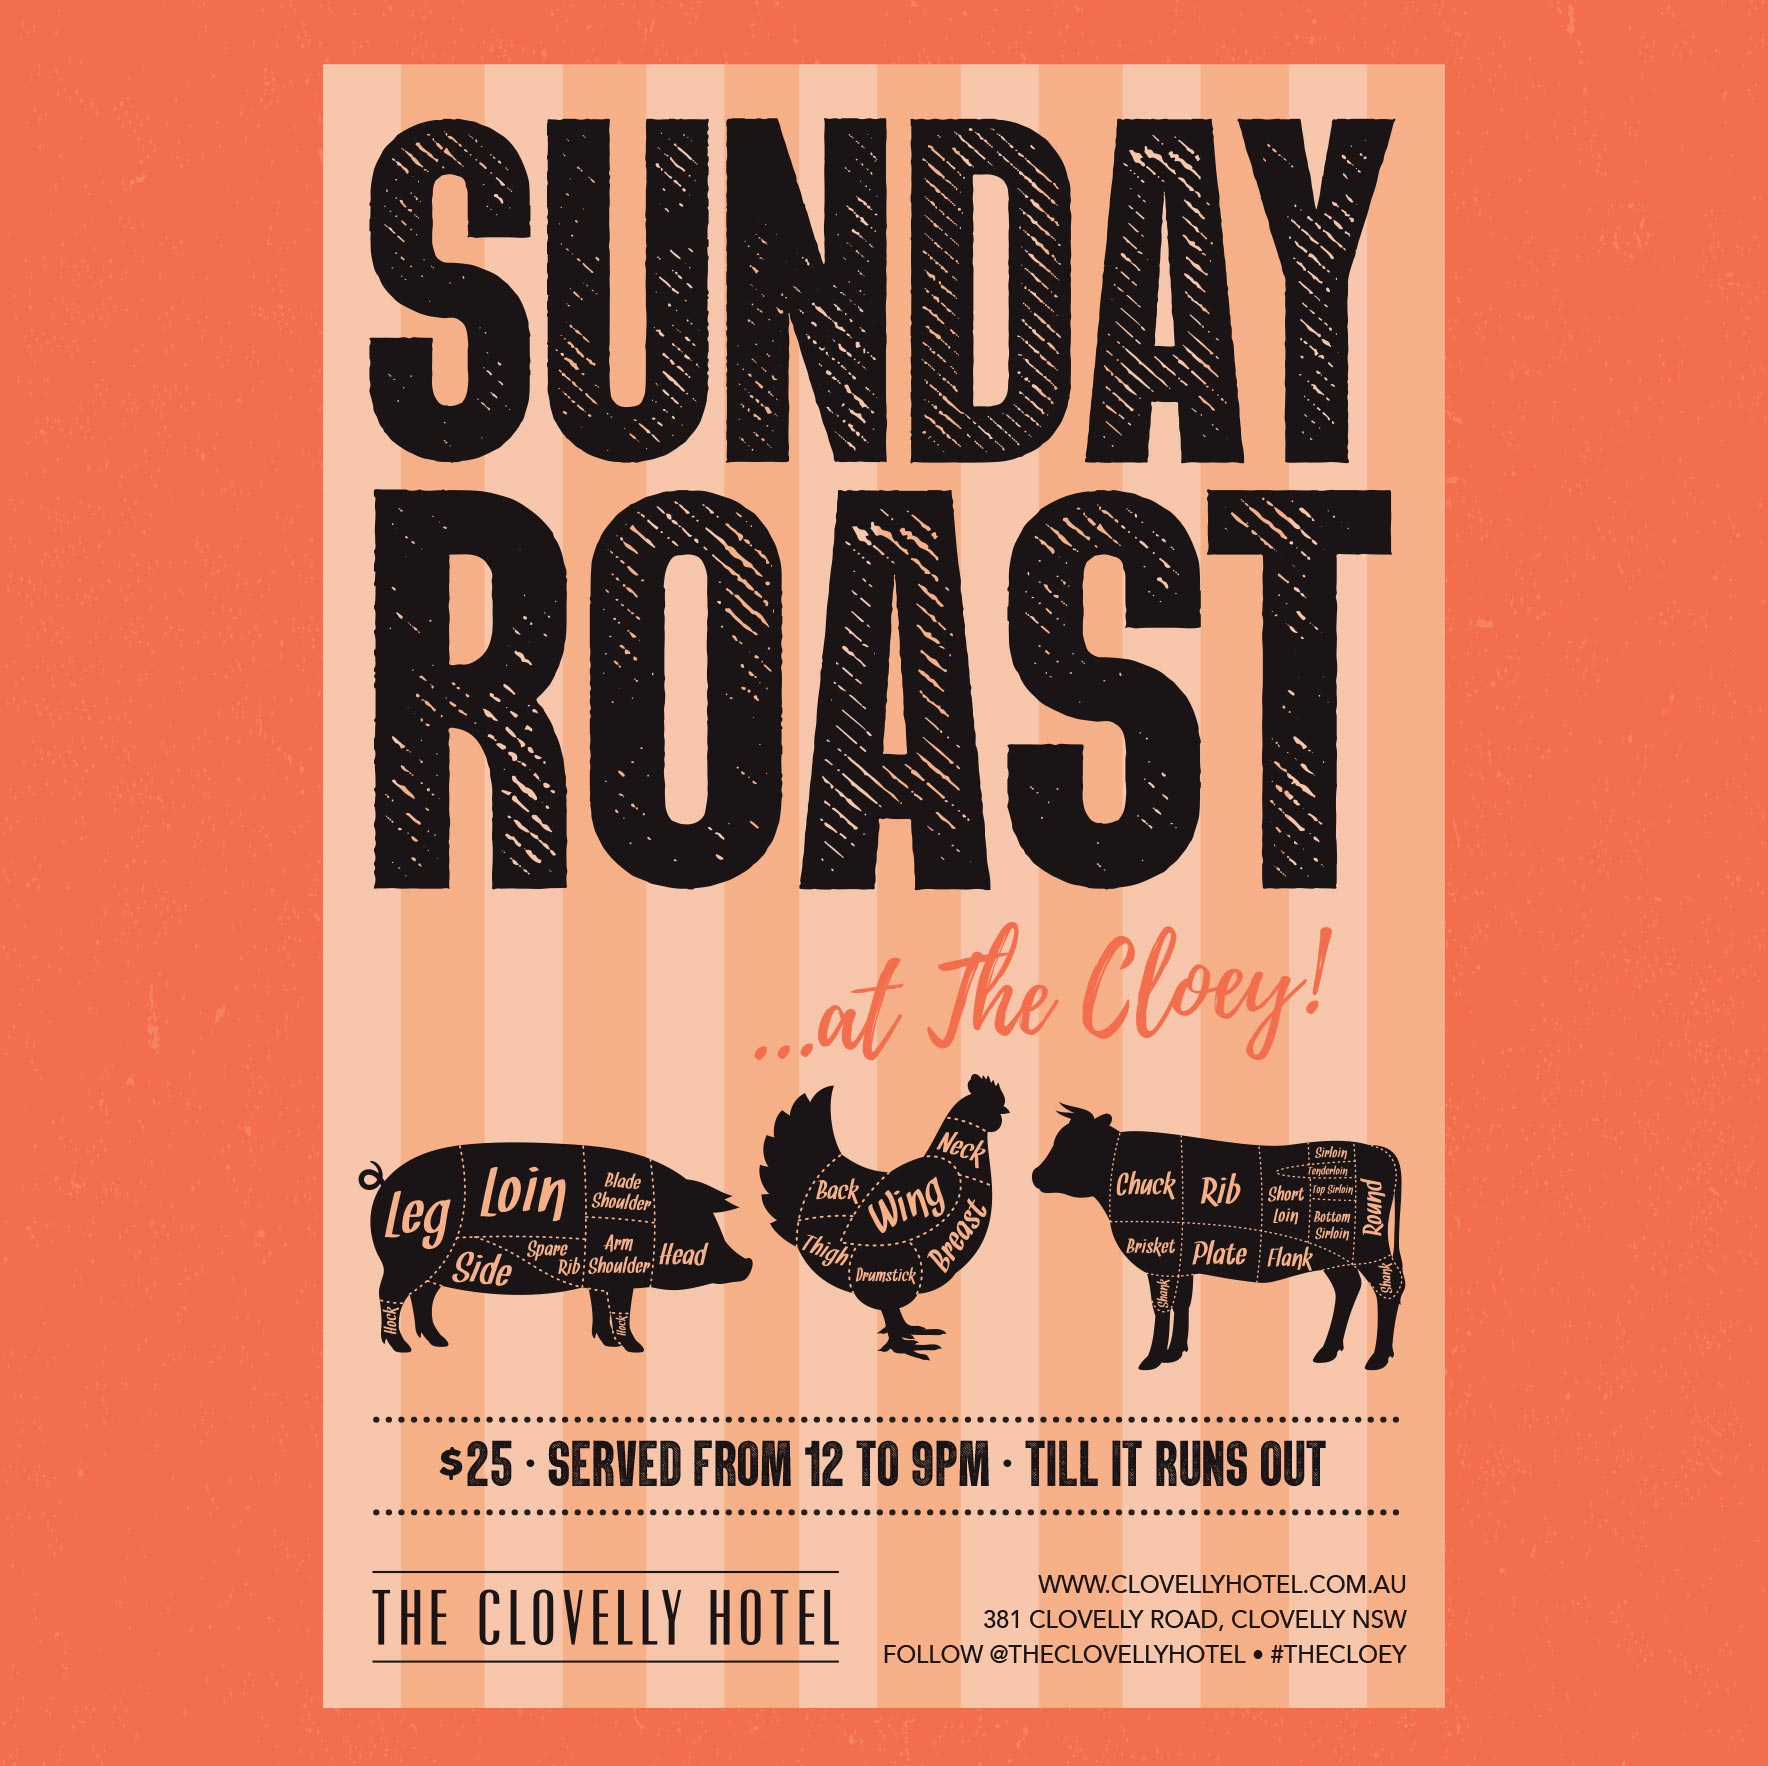 $25 roast served from 12-9pm